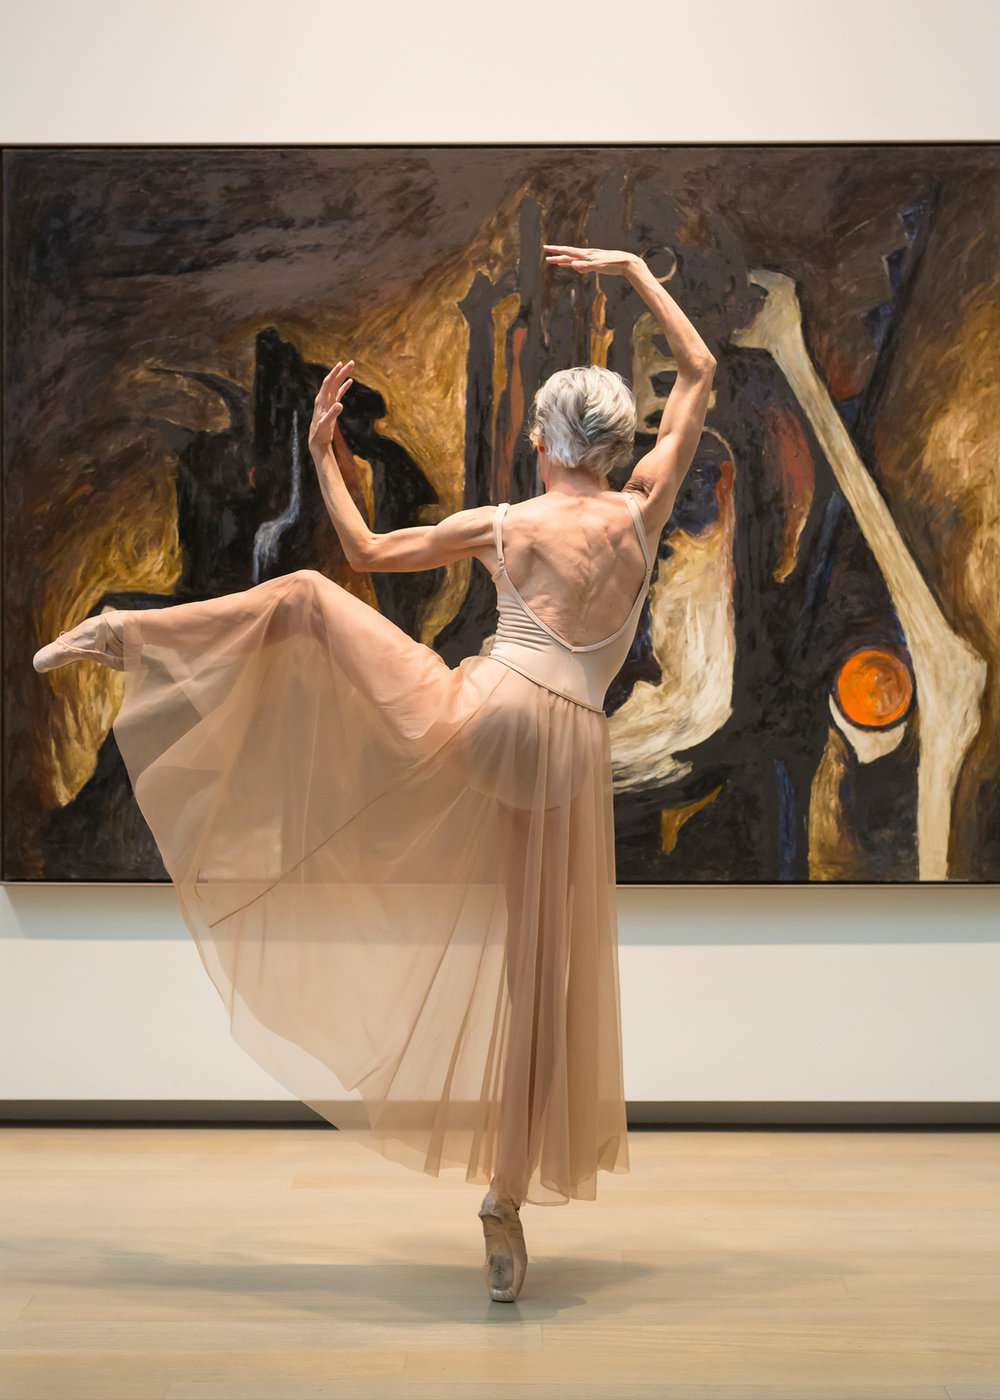 Valerie Madonia dances in photo session at Clyfford Still Museum in Denver with photographer Jennifer Koskinen, Merritt Portrait Studio